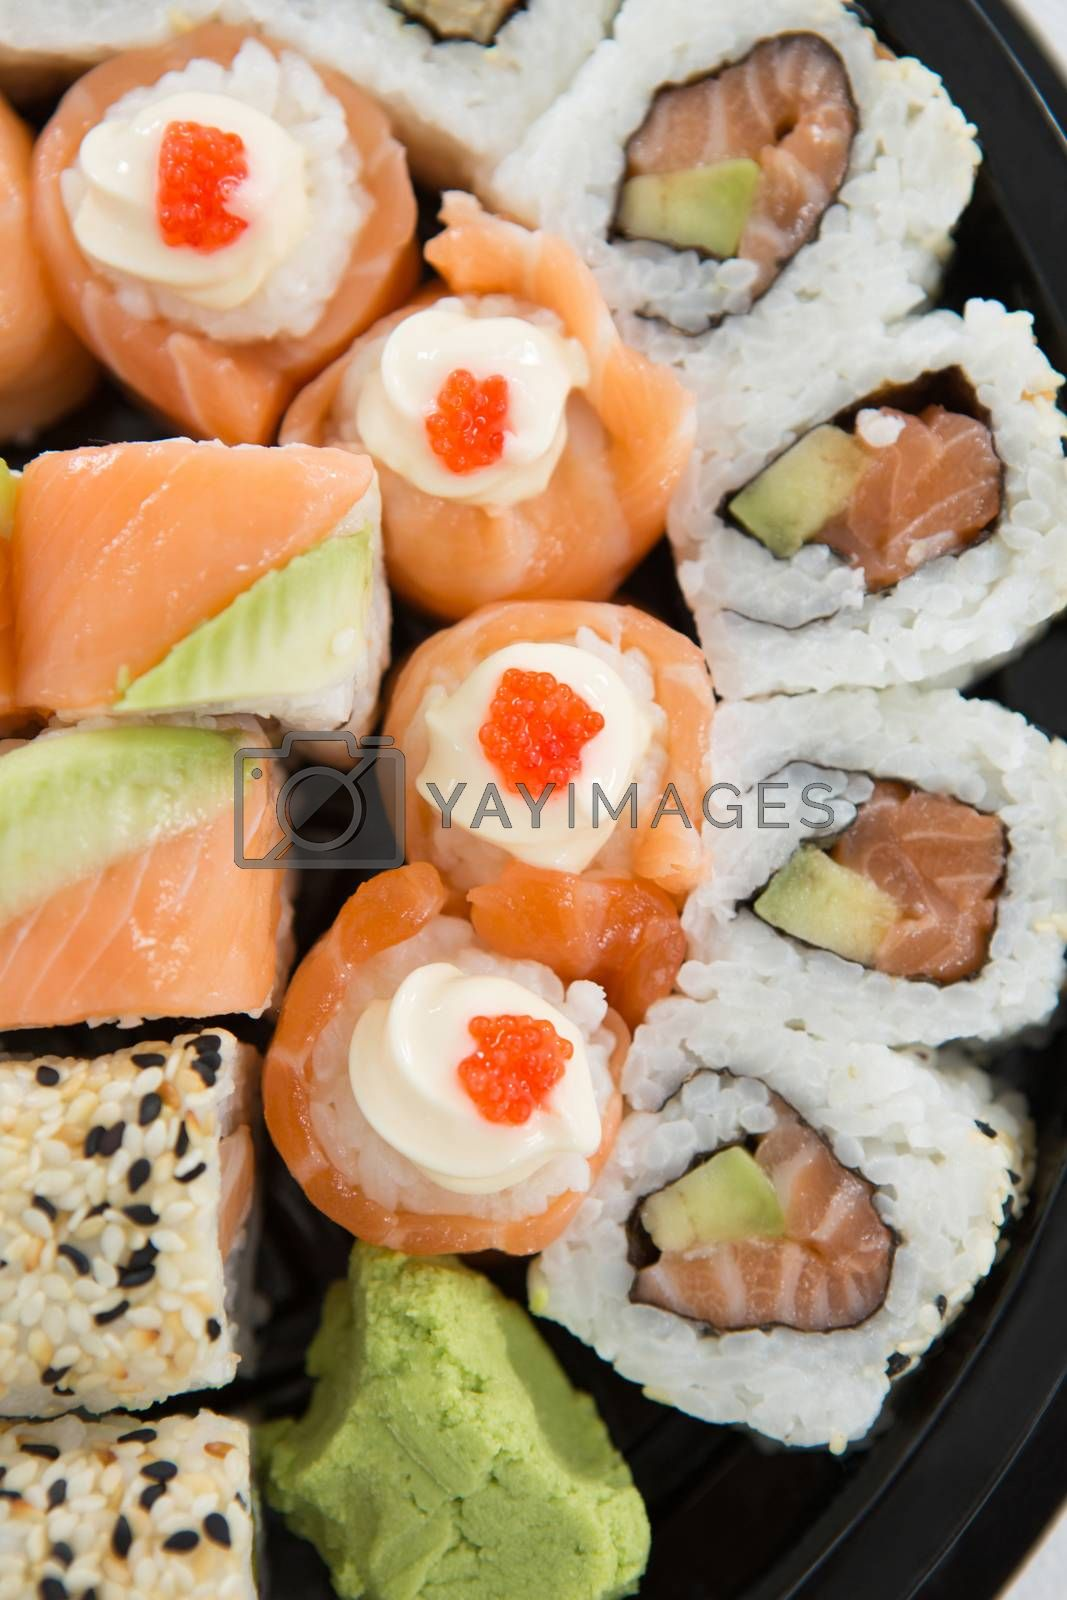 Close-up of sushi rolls with salmon